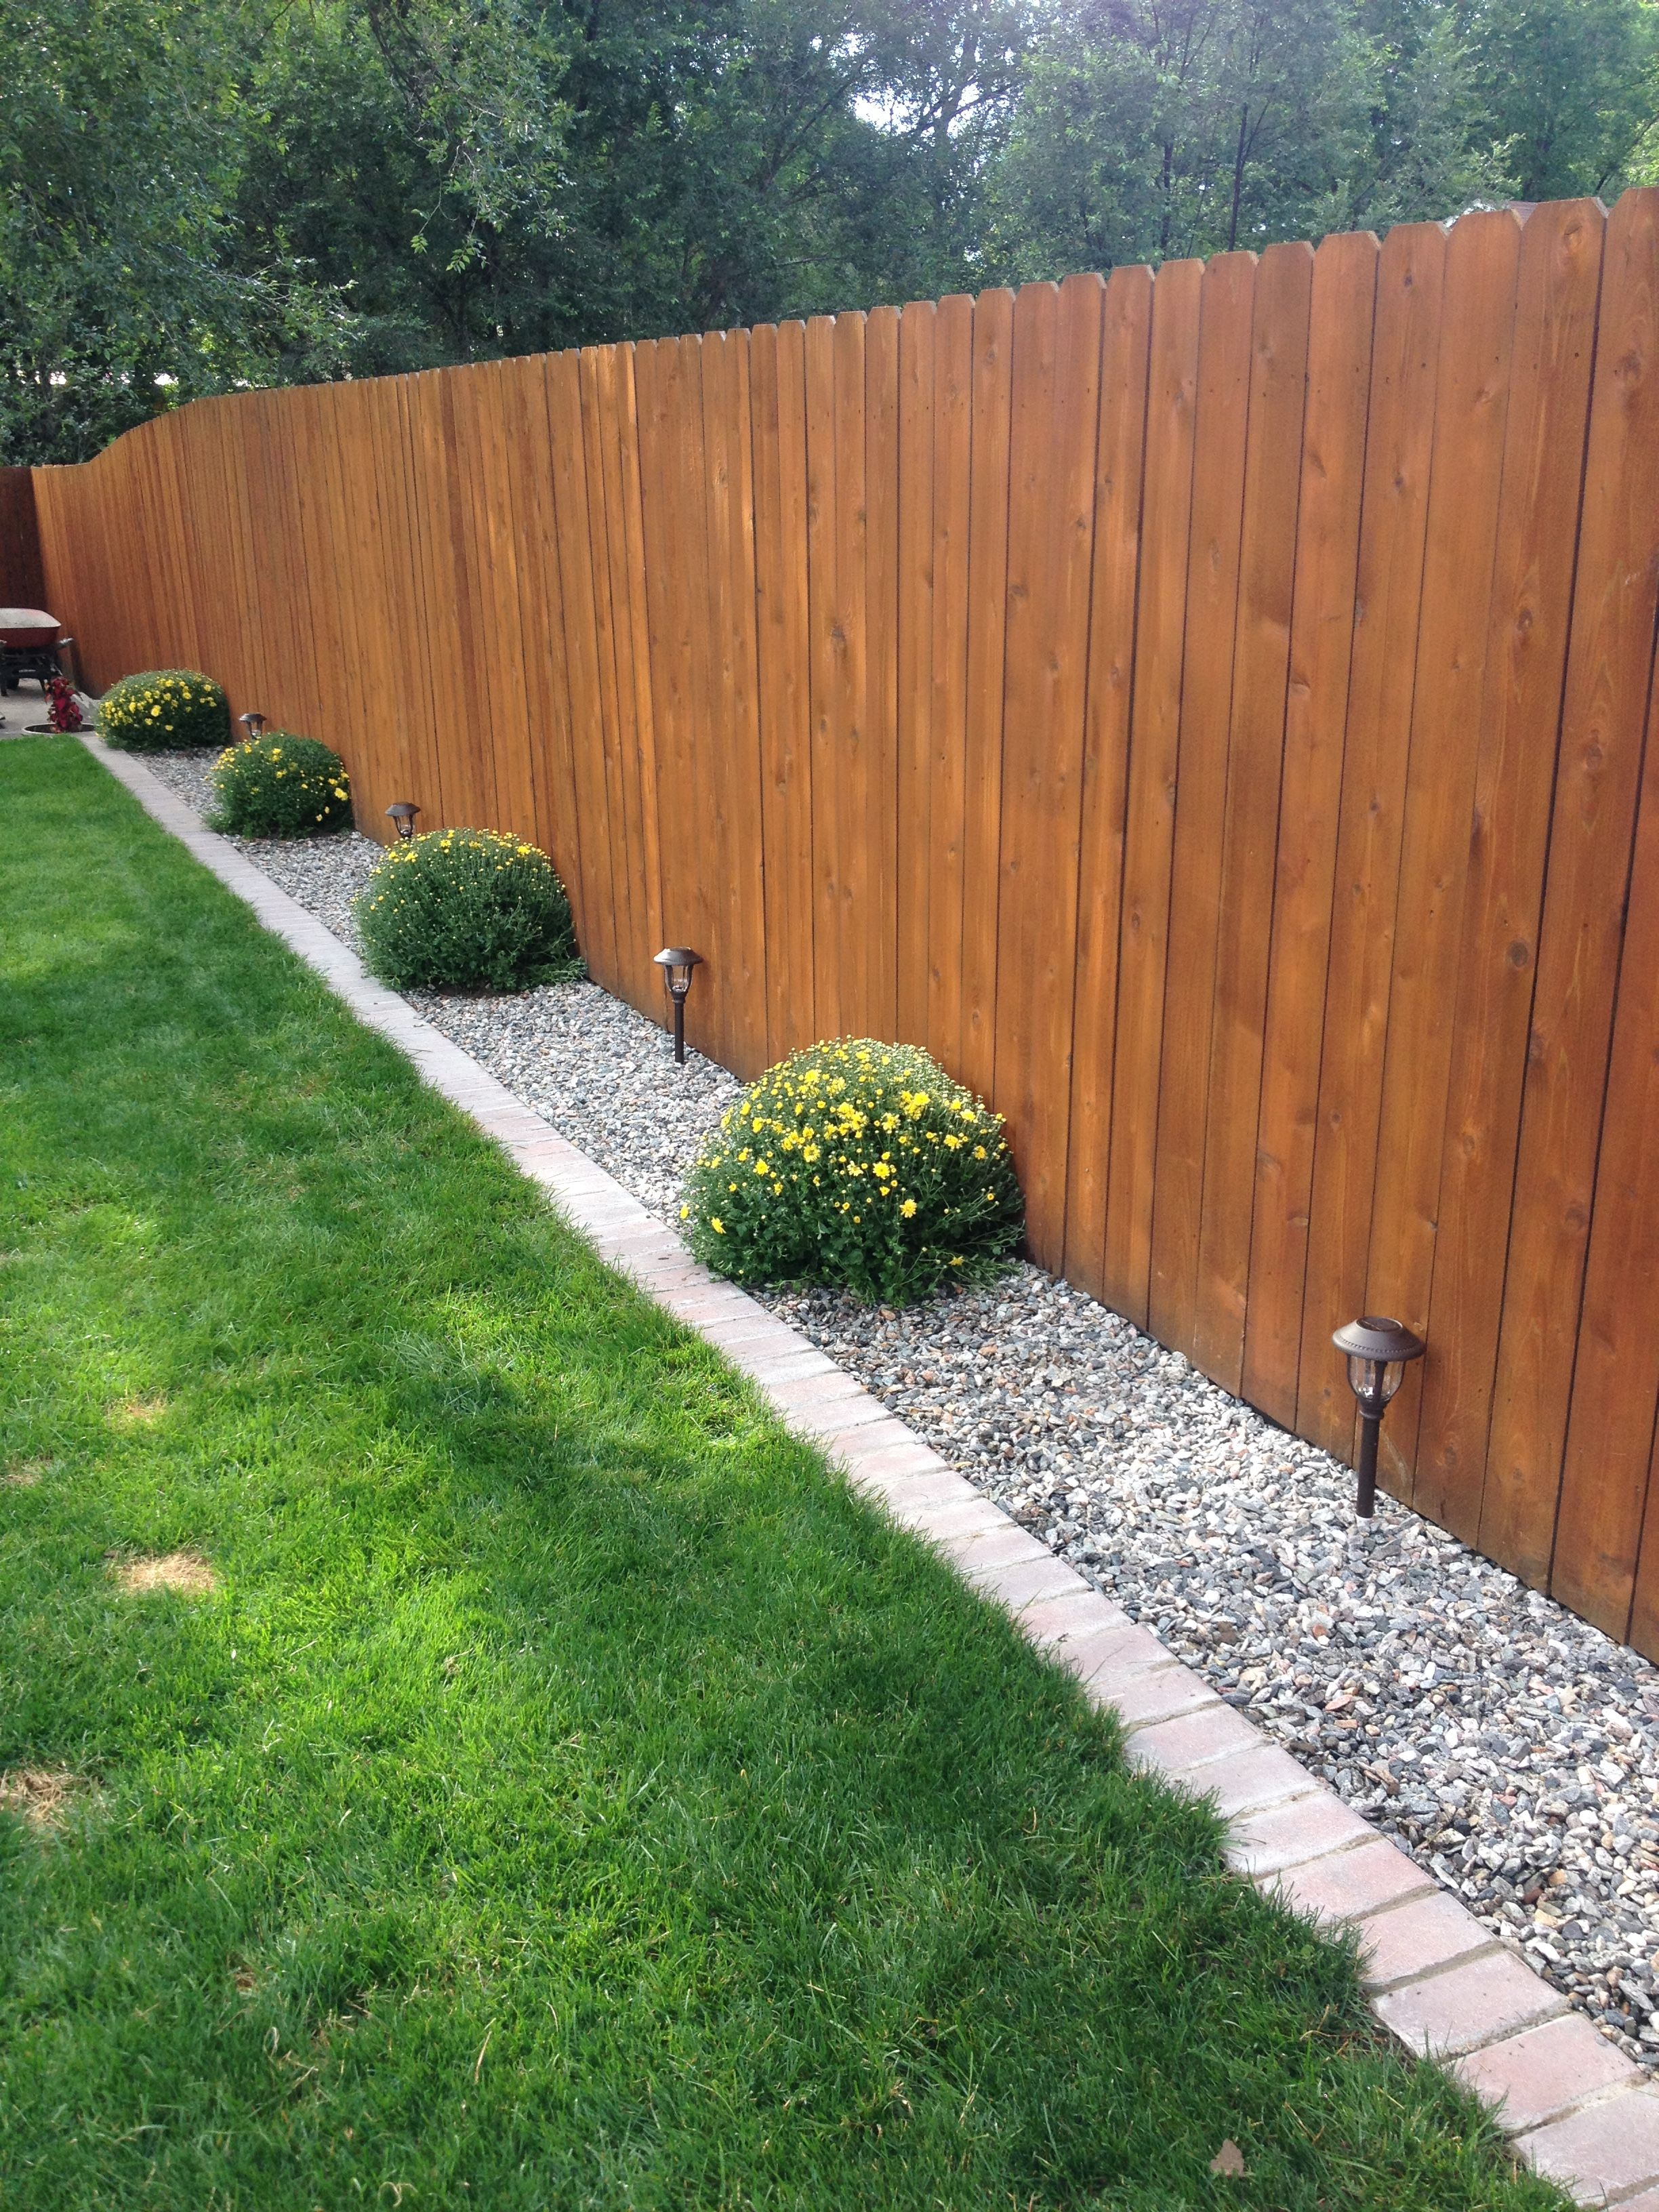 Brick And Gravel Lawn Border Easier To Mow Keep The Dogs From Digging Under Fence Backyard Landscaping Designs Garden Landscaping Diy Backyard Landscaping